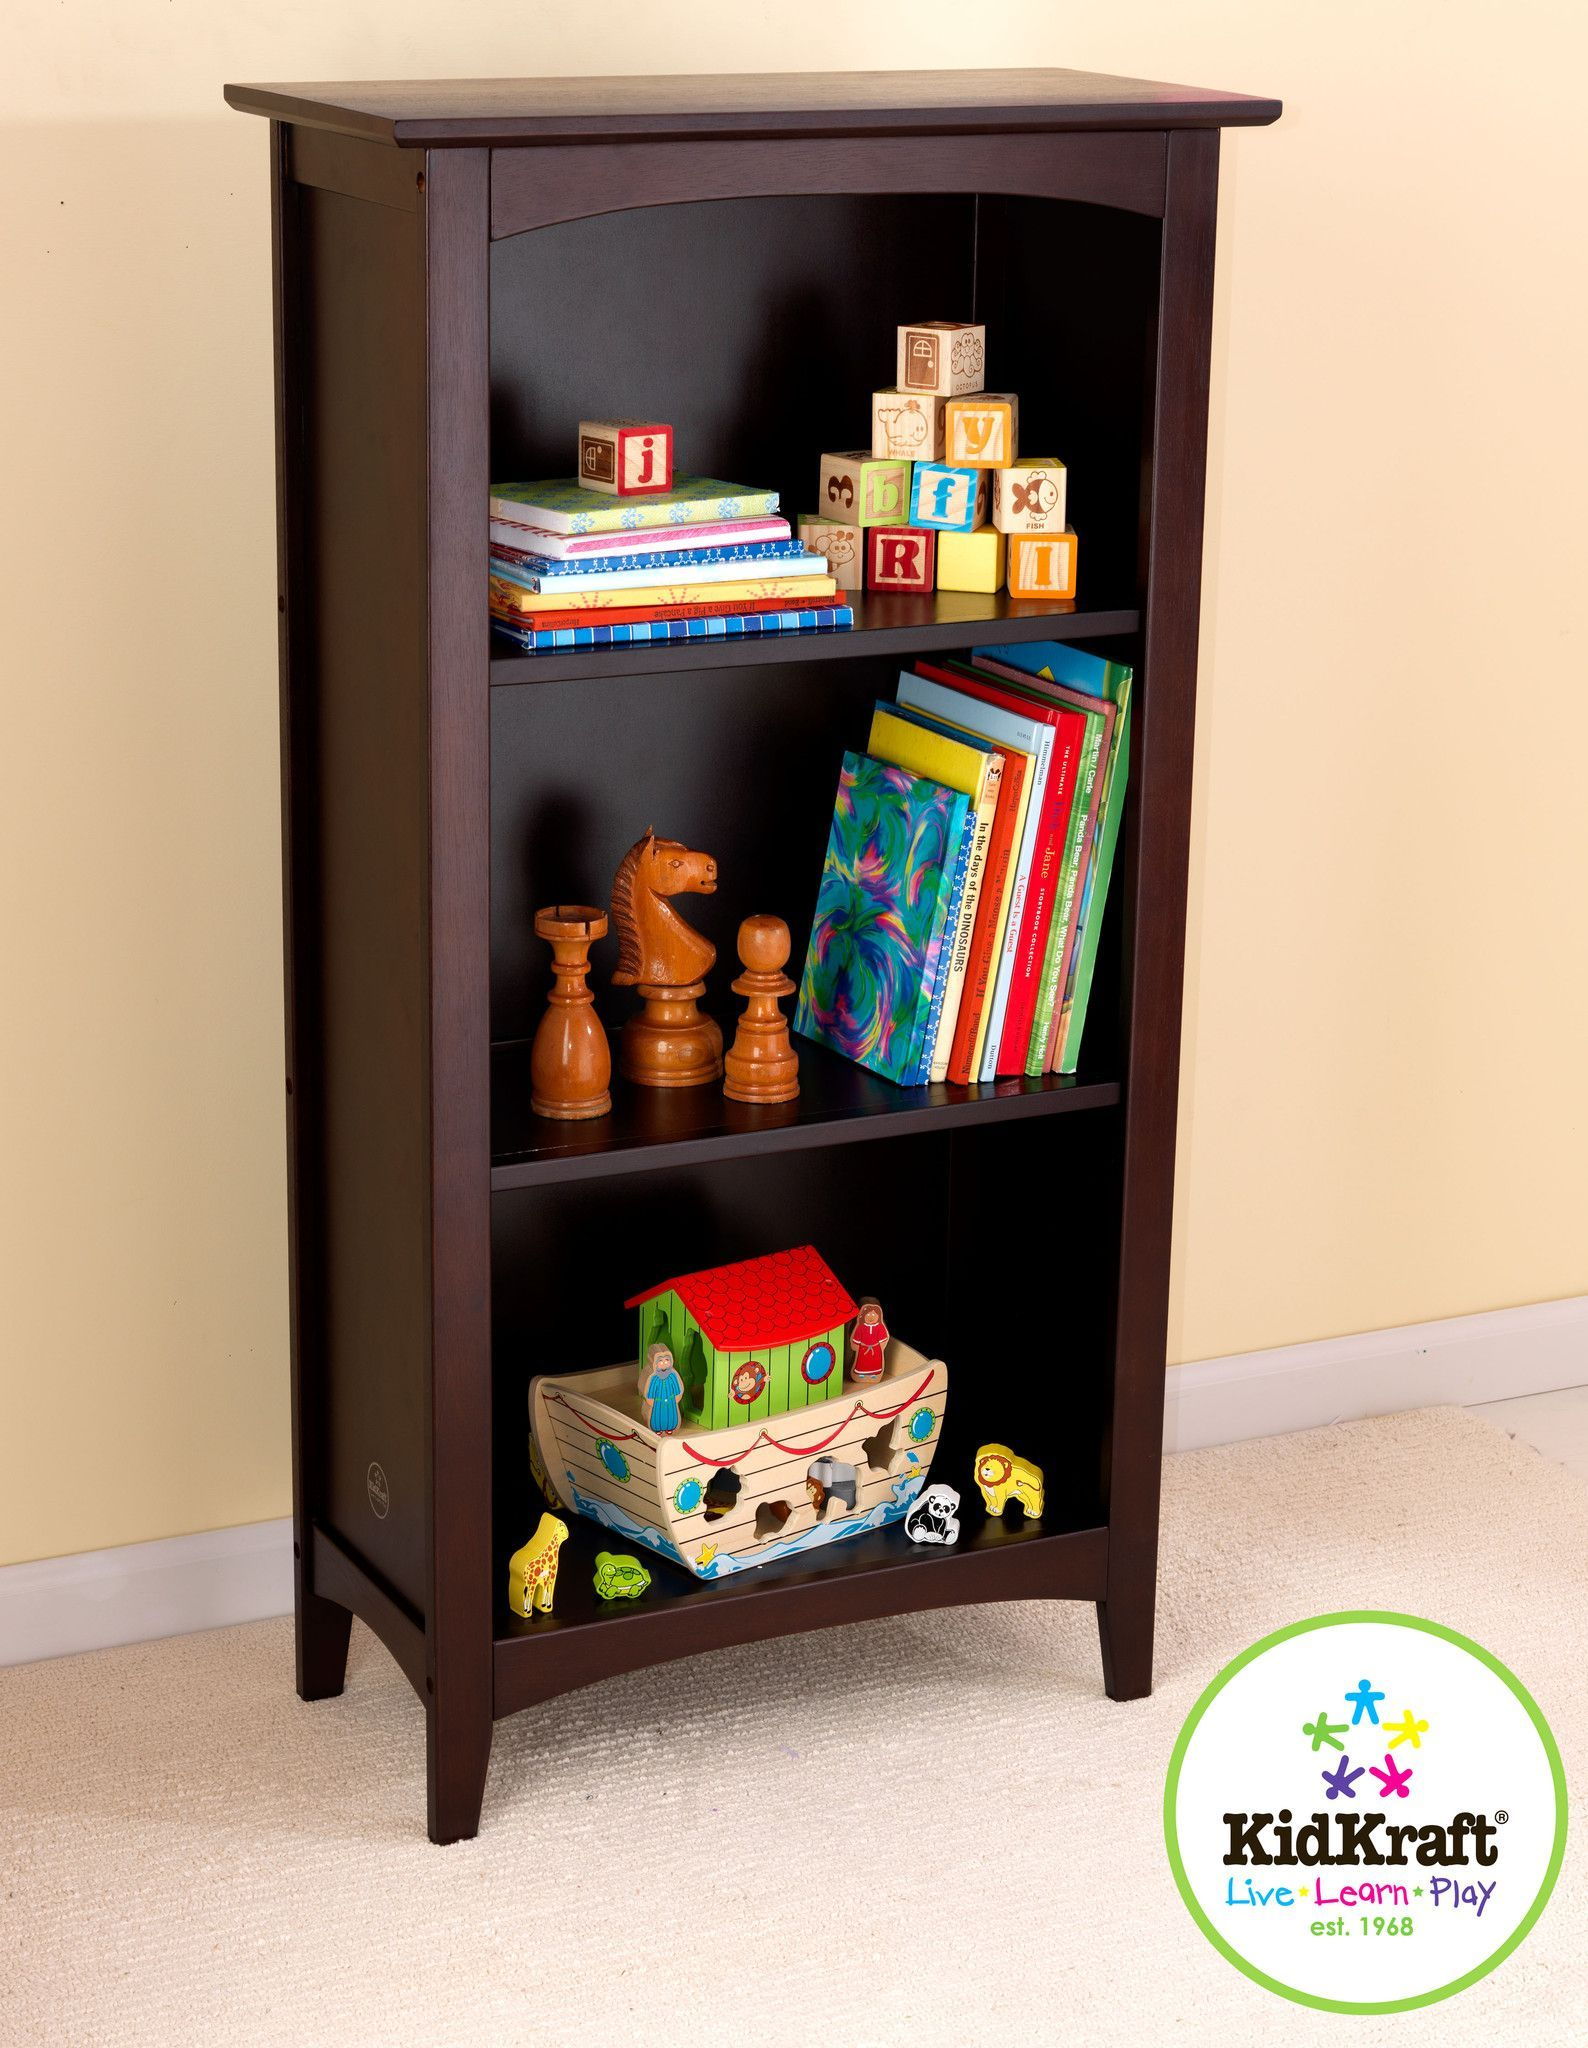 Kid Kraft Avalon Tall Bookshelf Espresso